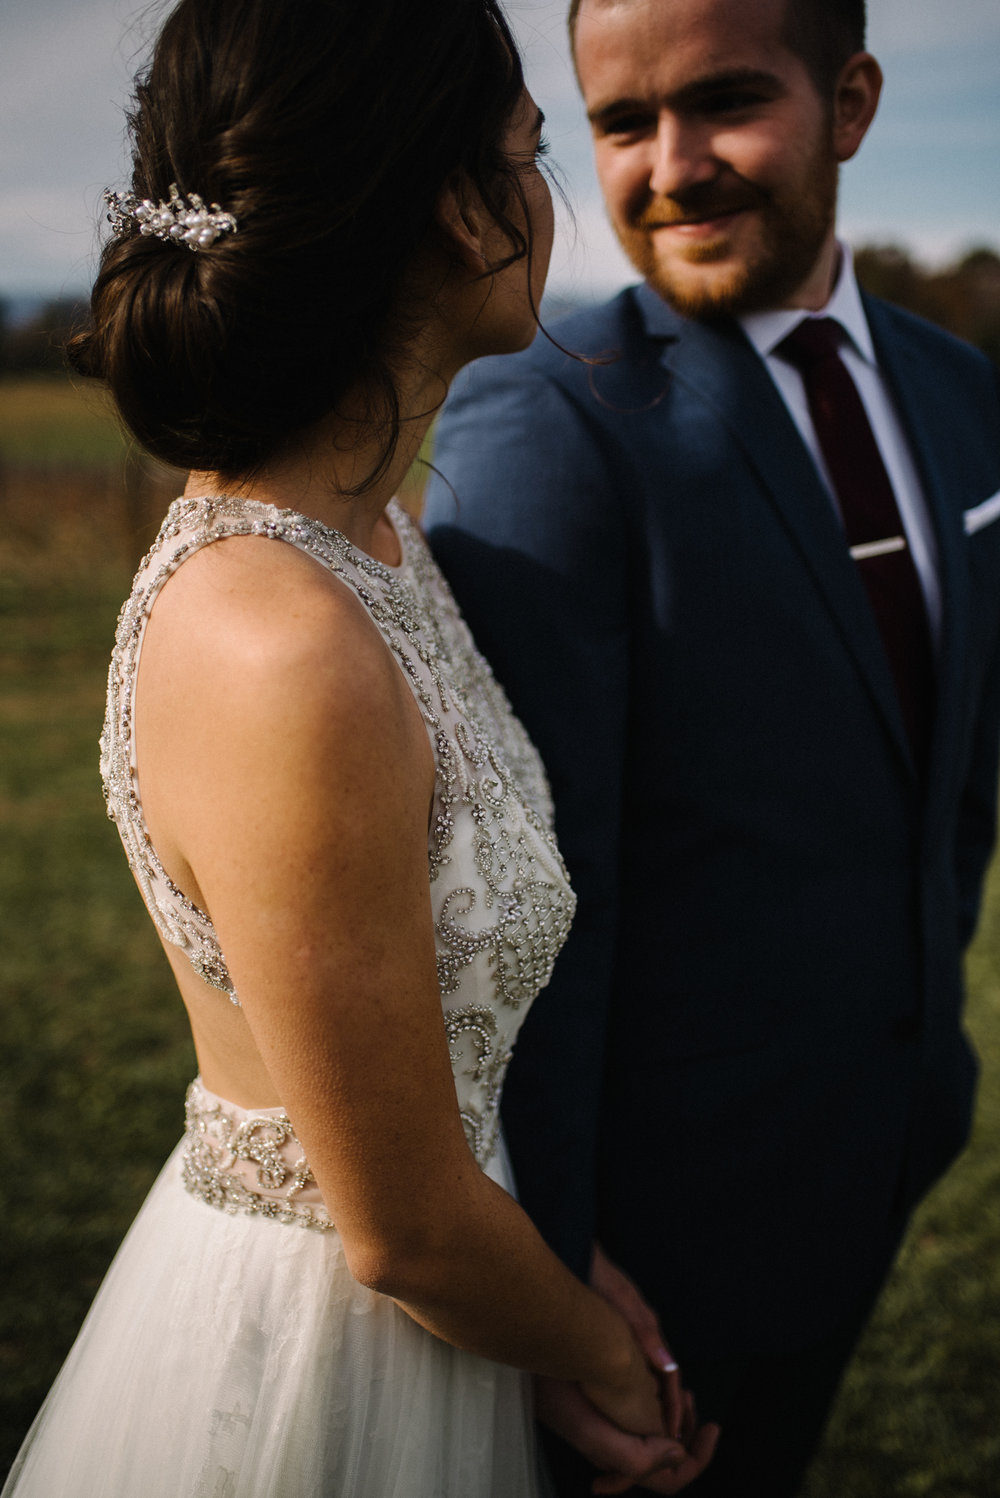 Alyssa and Jesse Winter Vineyard Wedding Luray Virginia Shenandoah Valley Faithbrooke_34.JPG